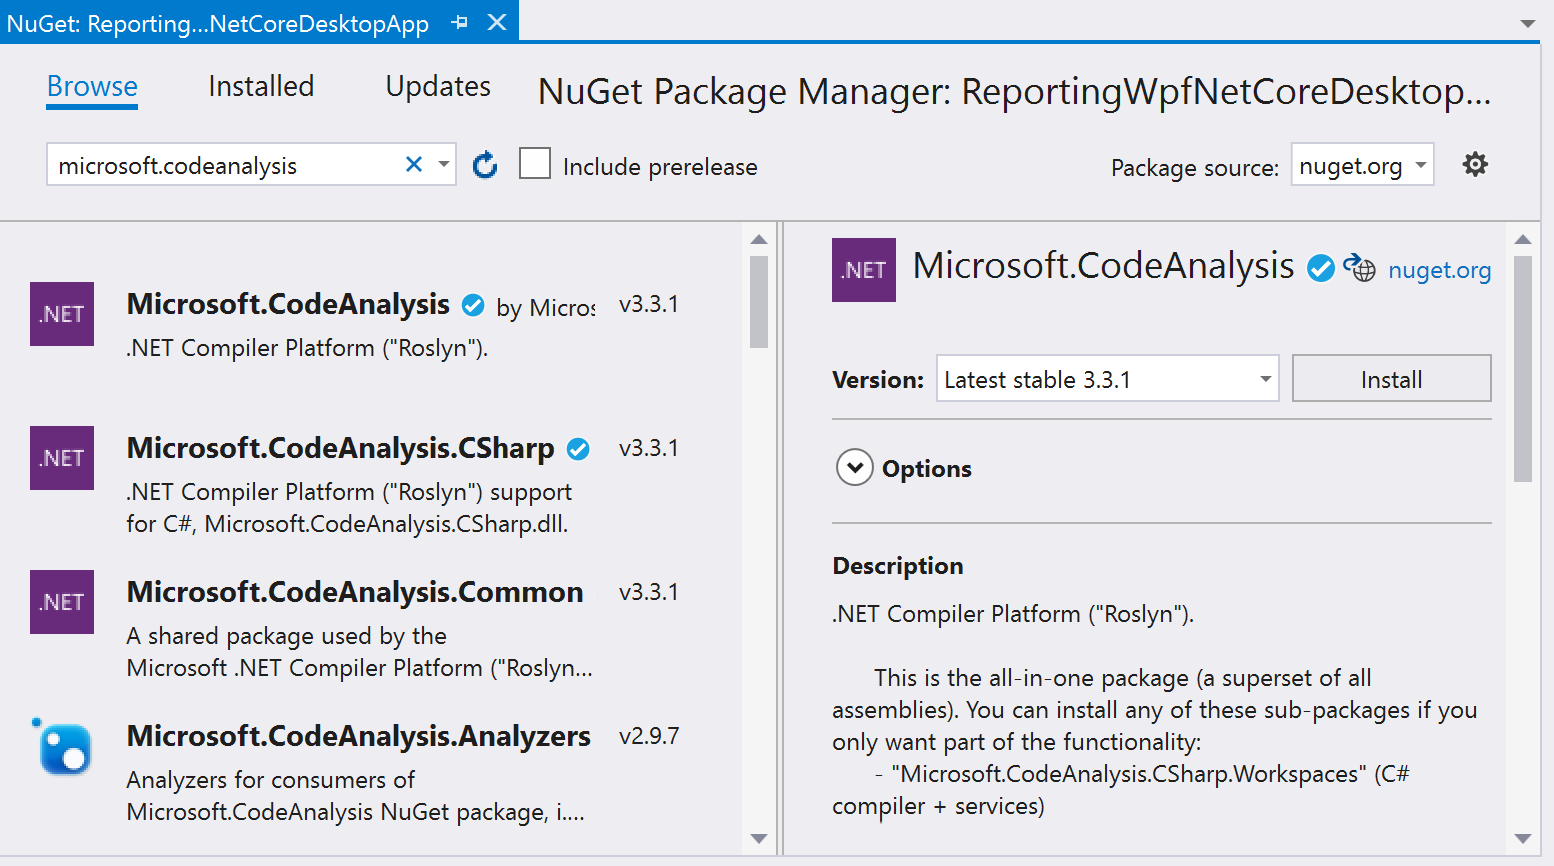 NuGet Package Manager - Microsoft.CodeAnalysis